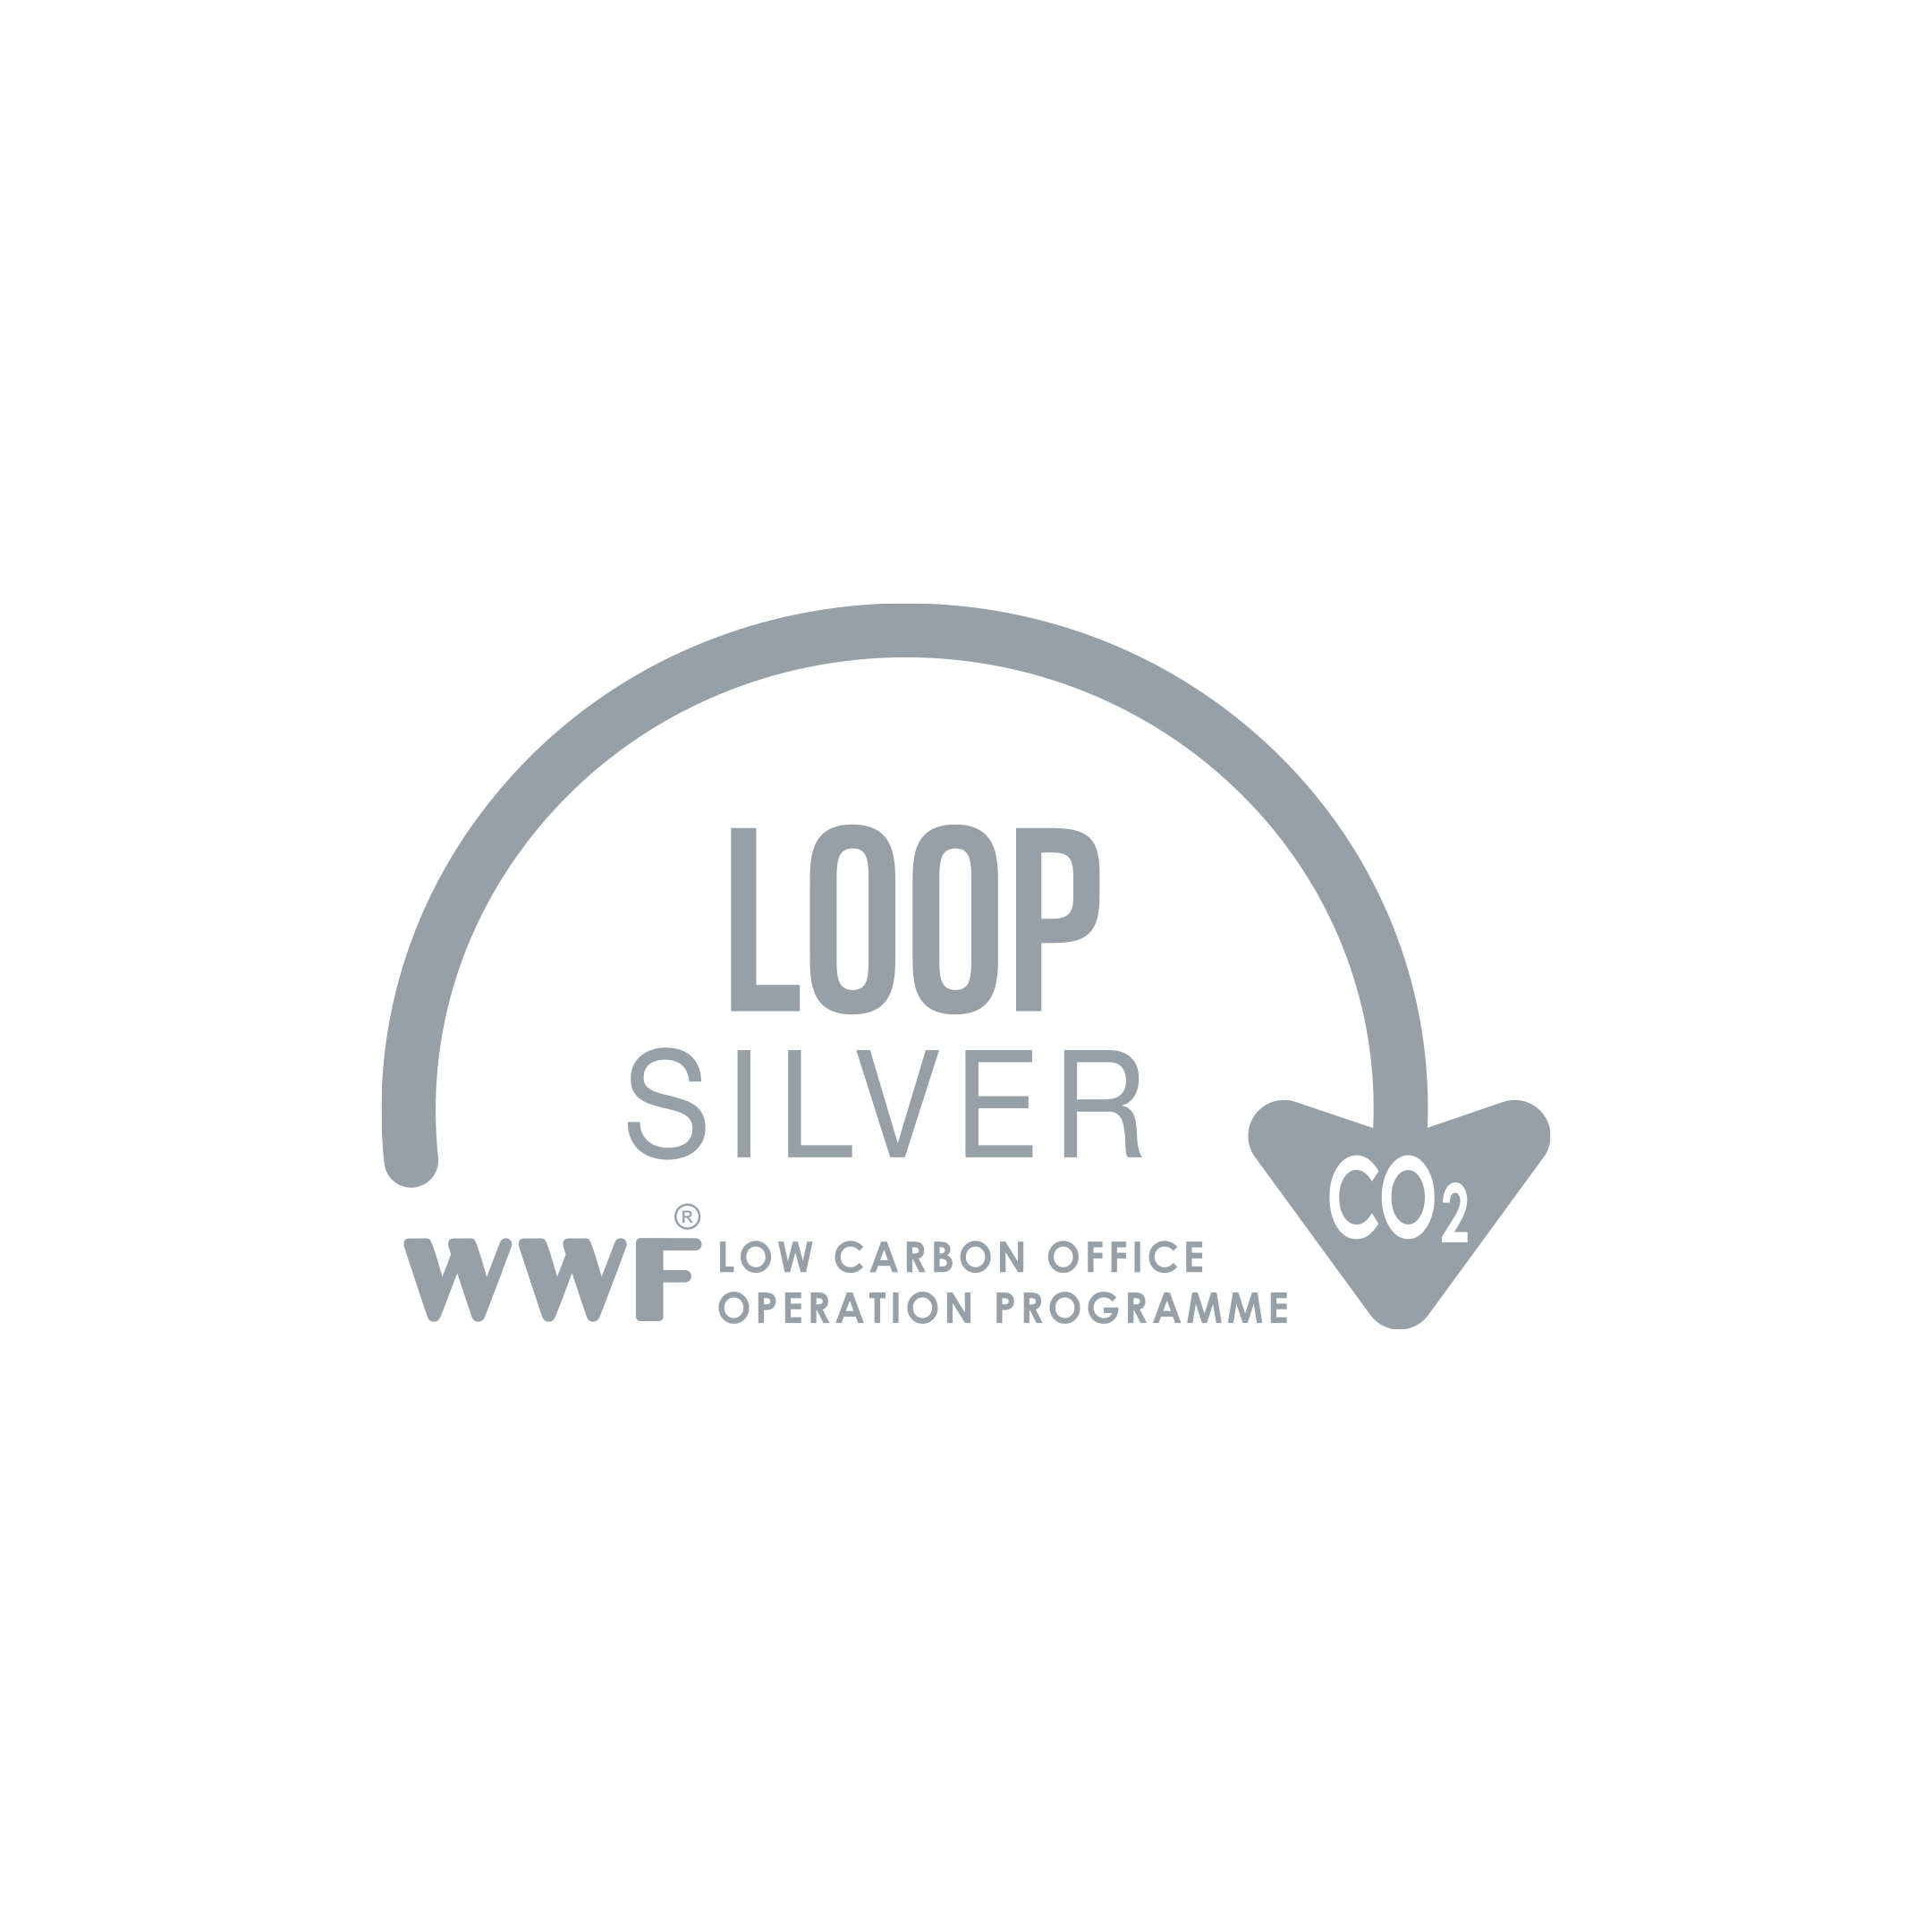 Lidl Hong Kong Limited - Corporate Responsibility - WWF Hong Kong LOOP